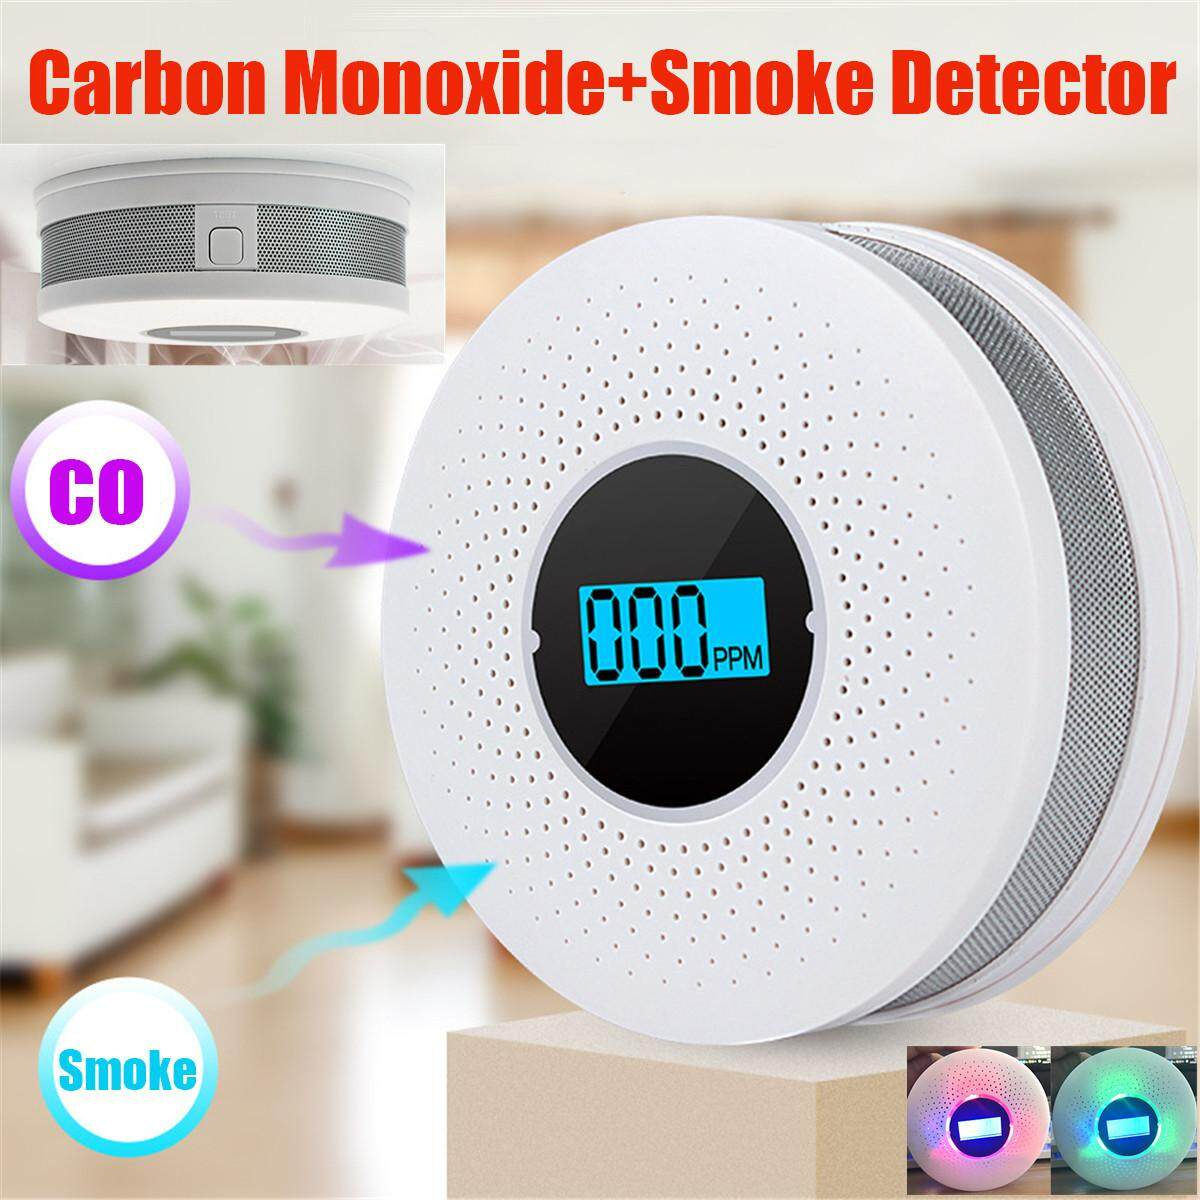 Co Carbon Monoxide Detector Smoke Fire Alarm with Voice Warning Home Security